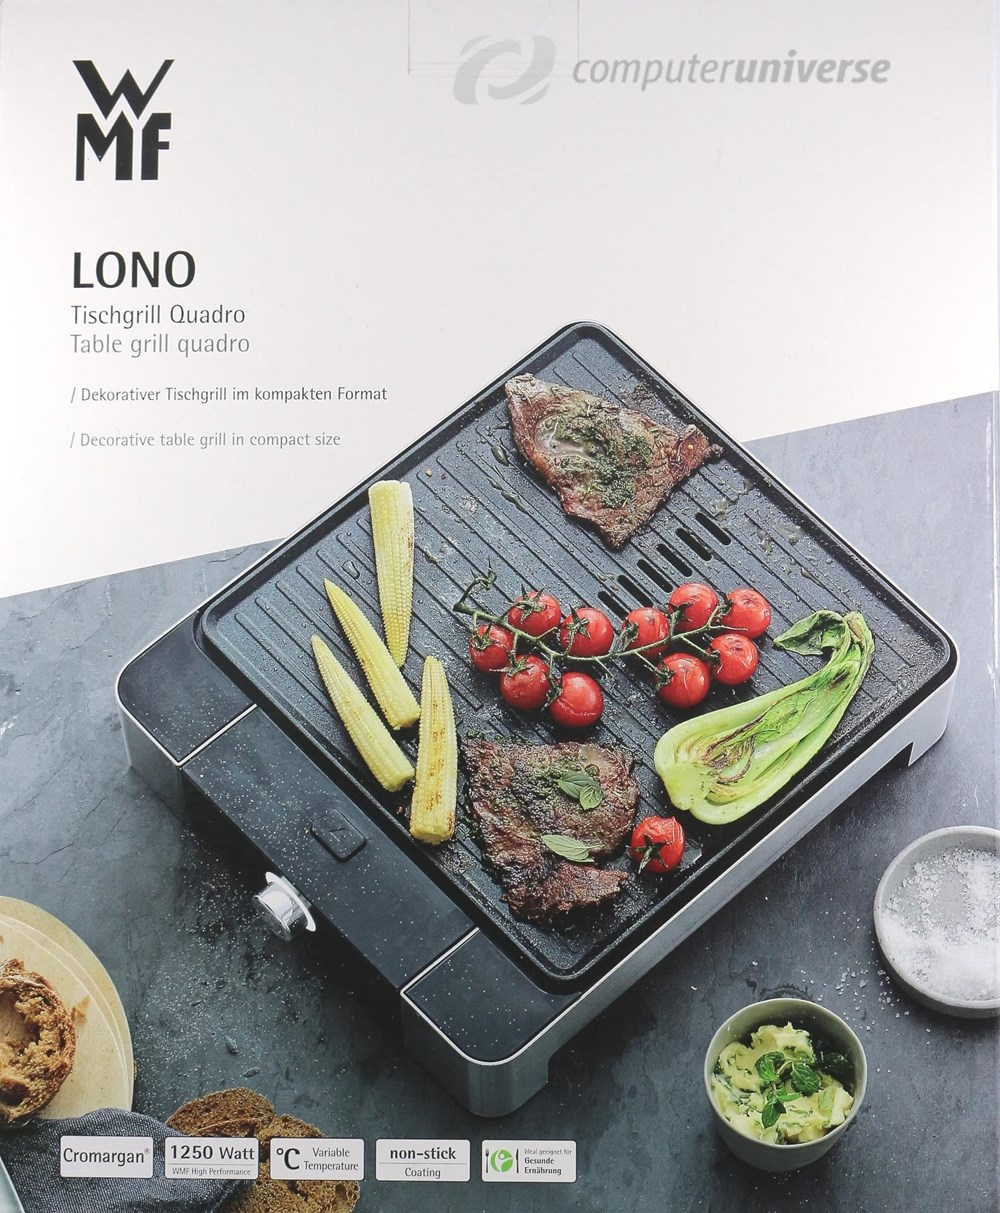 wmf lono quadro grill grills computeruniverse. Black Bedroom Furniture Sets. Home Design Ideas